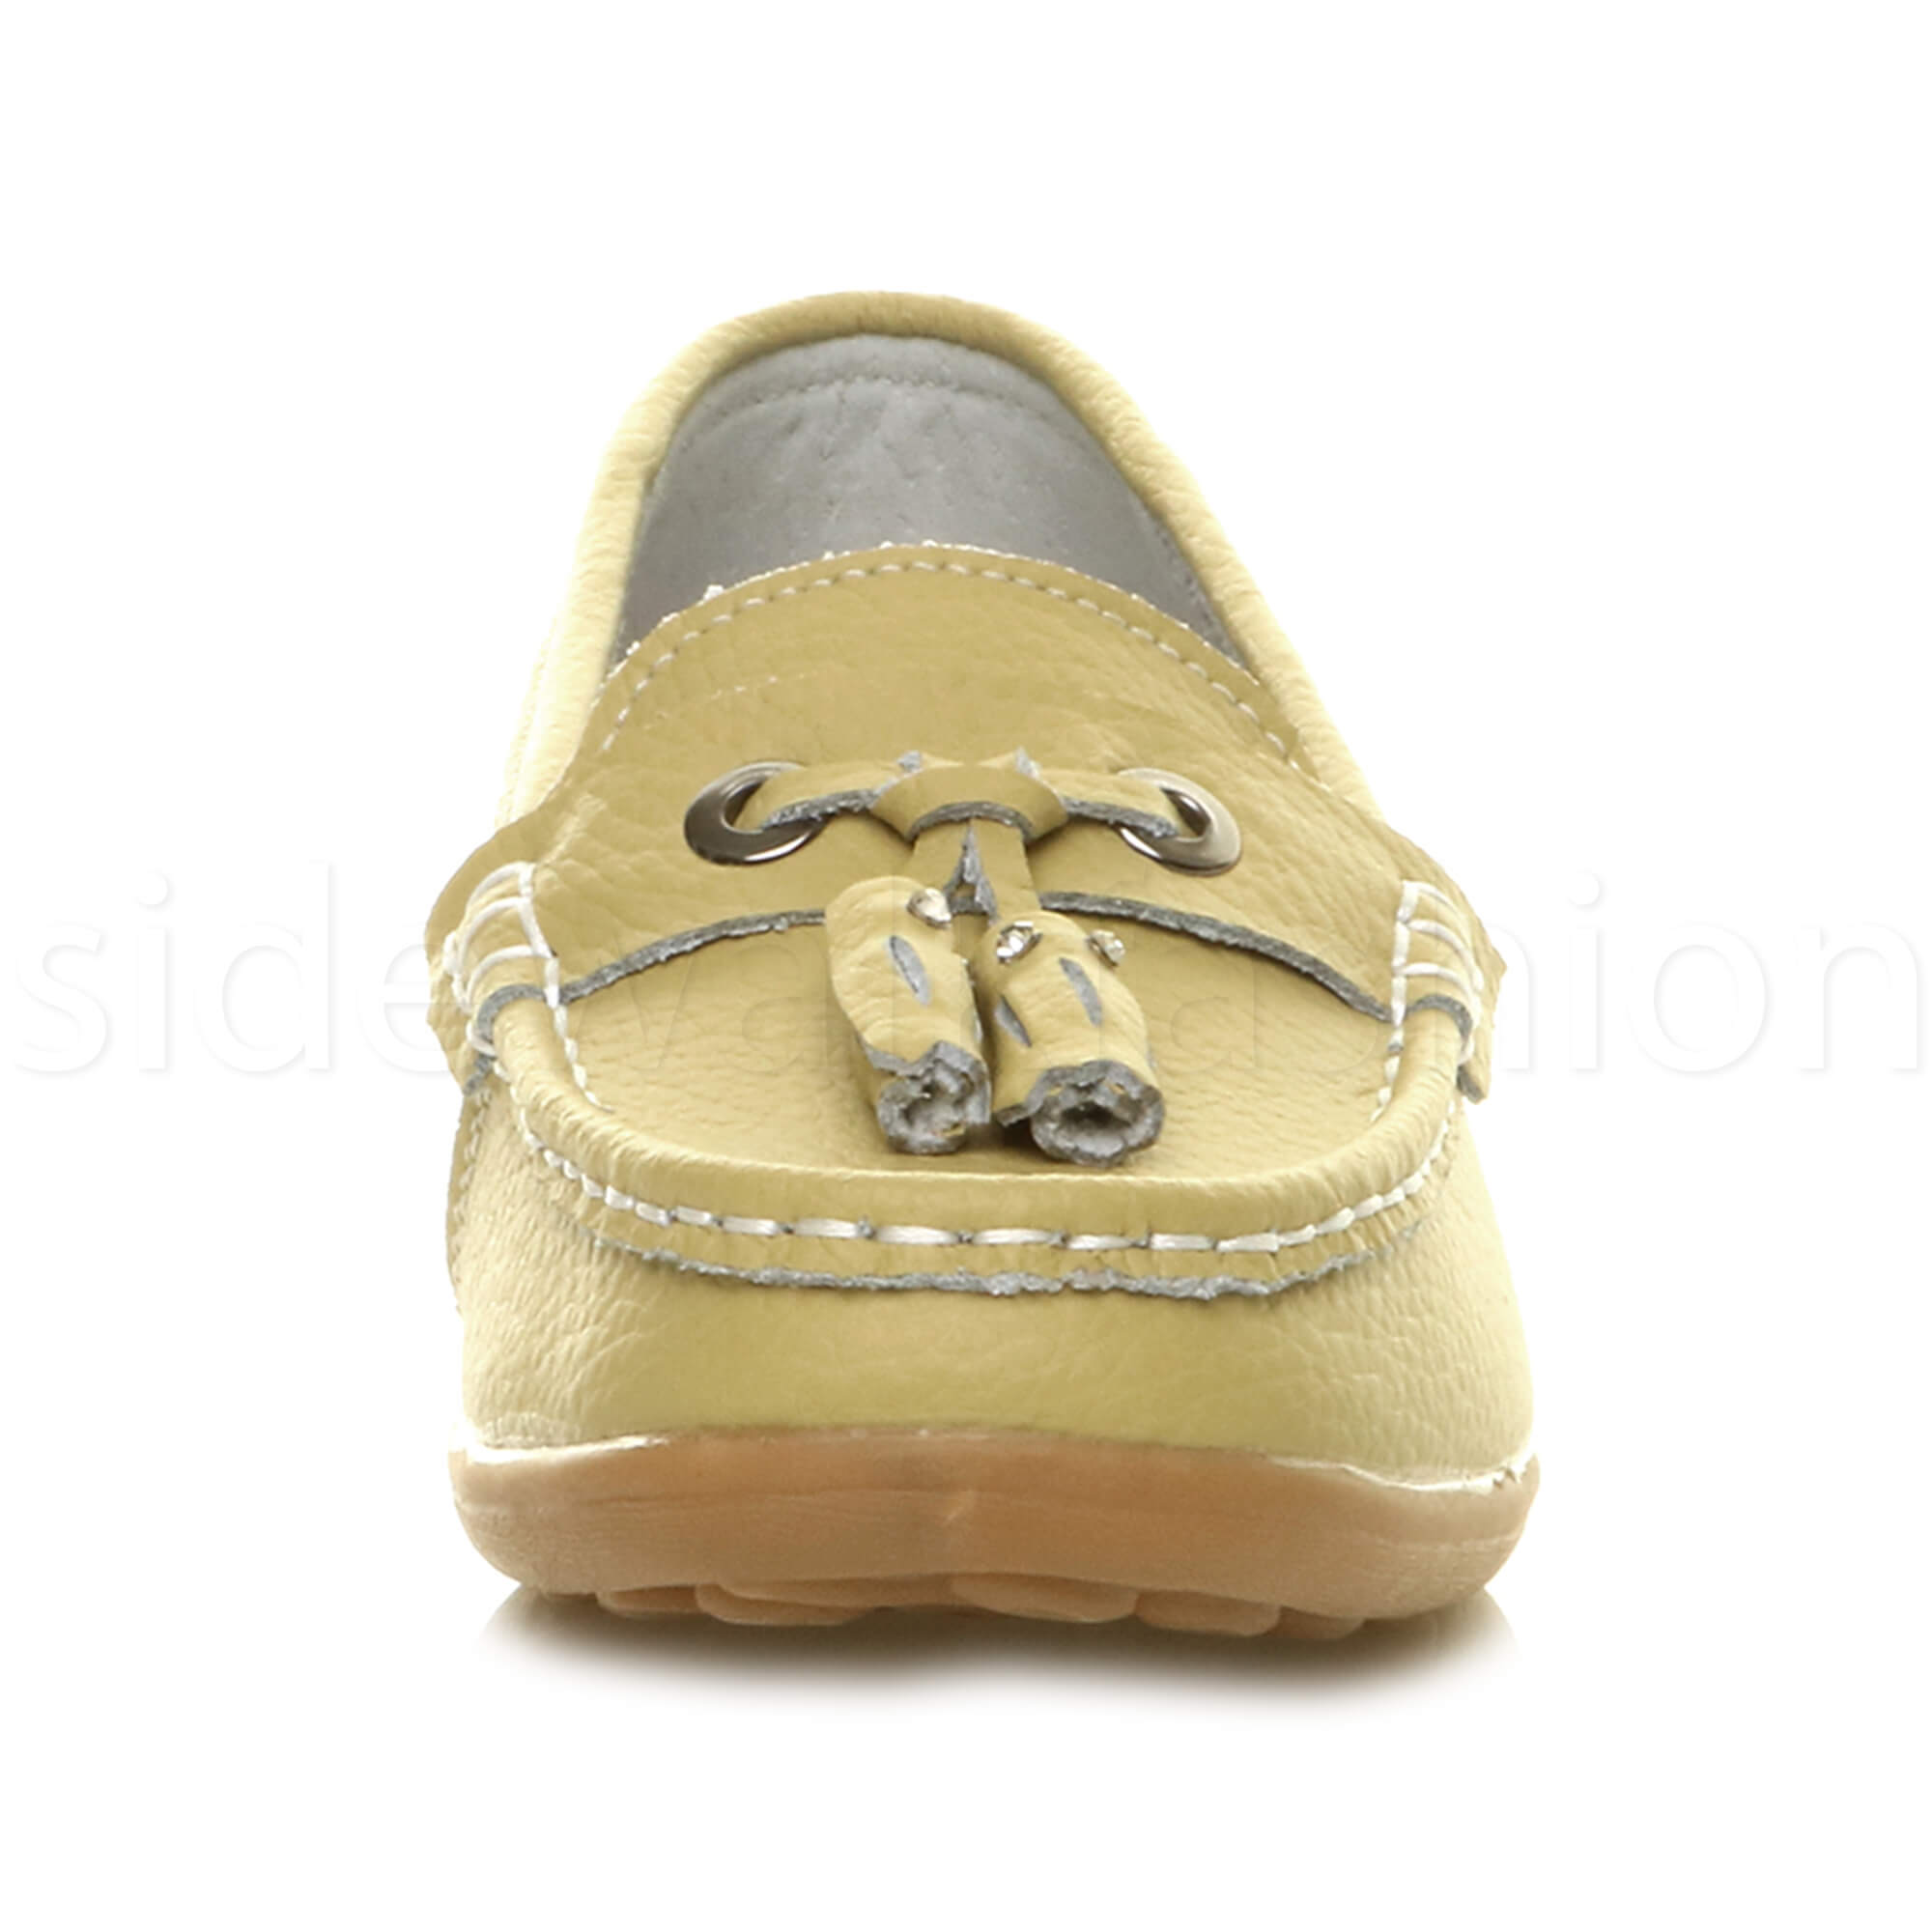 Womens-ladies-low-heel-moccasins-leather-tassel-loafers-comfort-boat-shoes-size